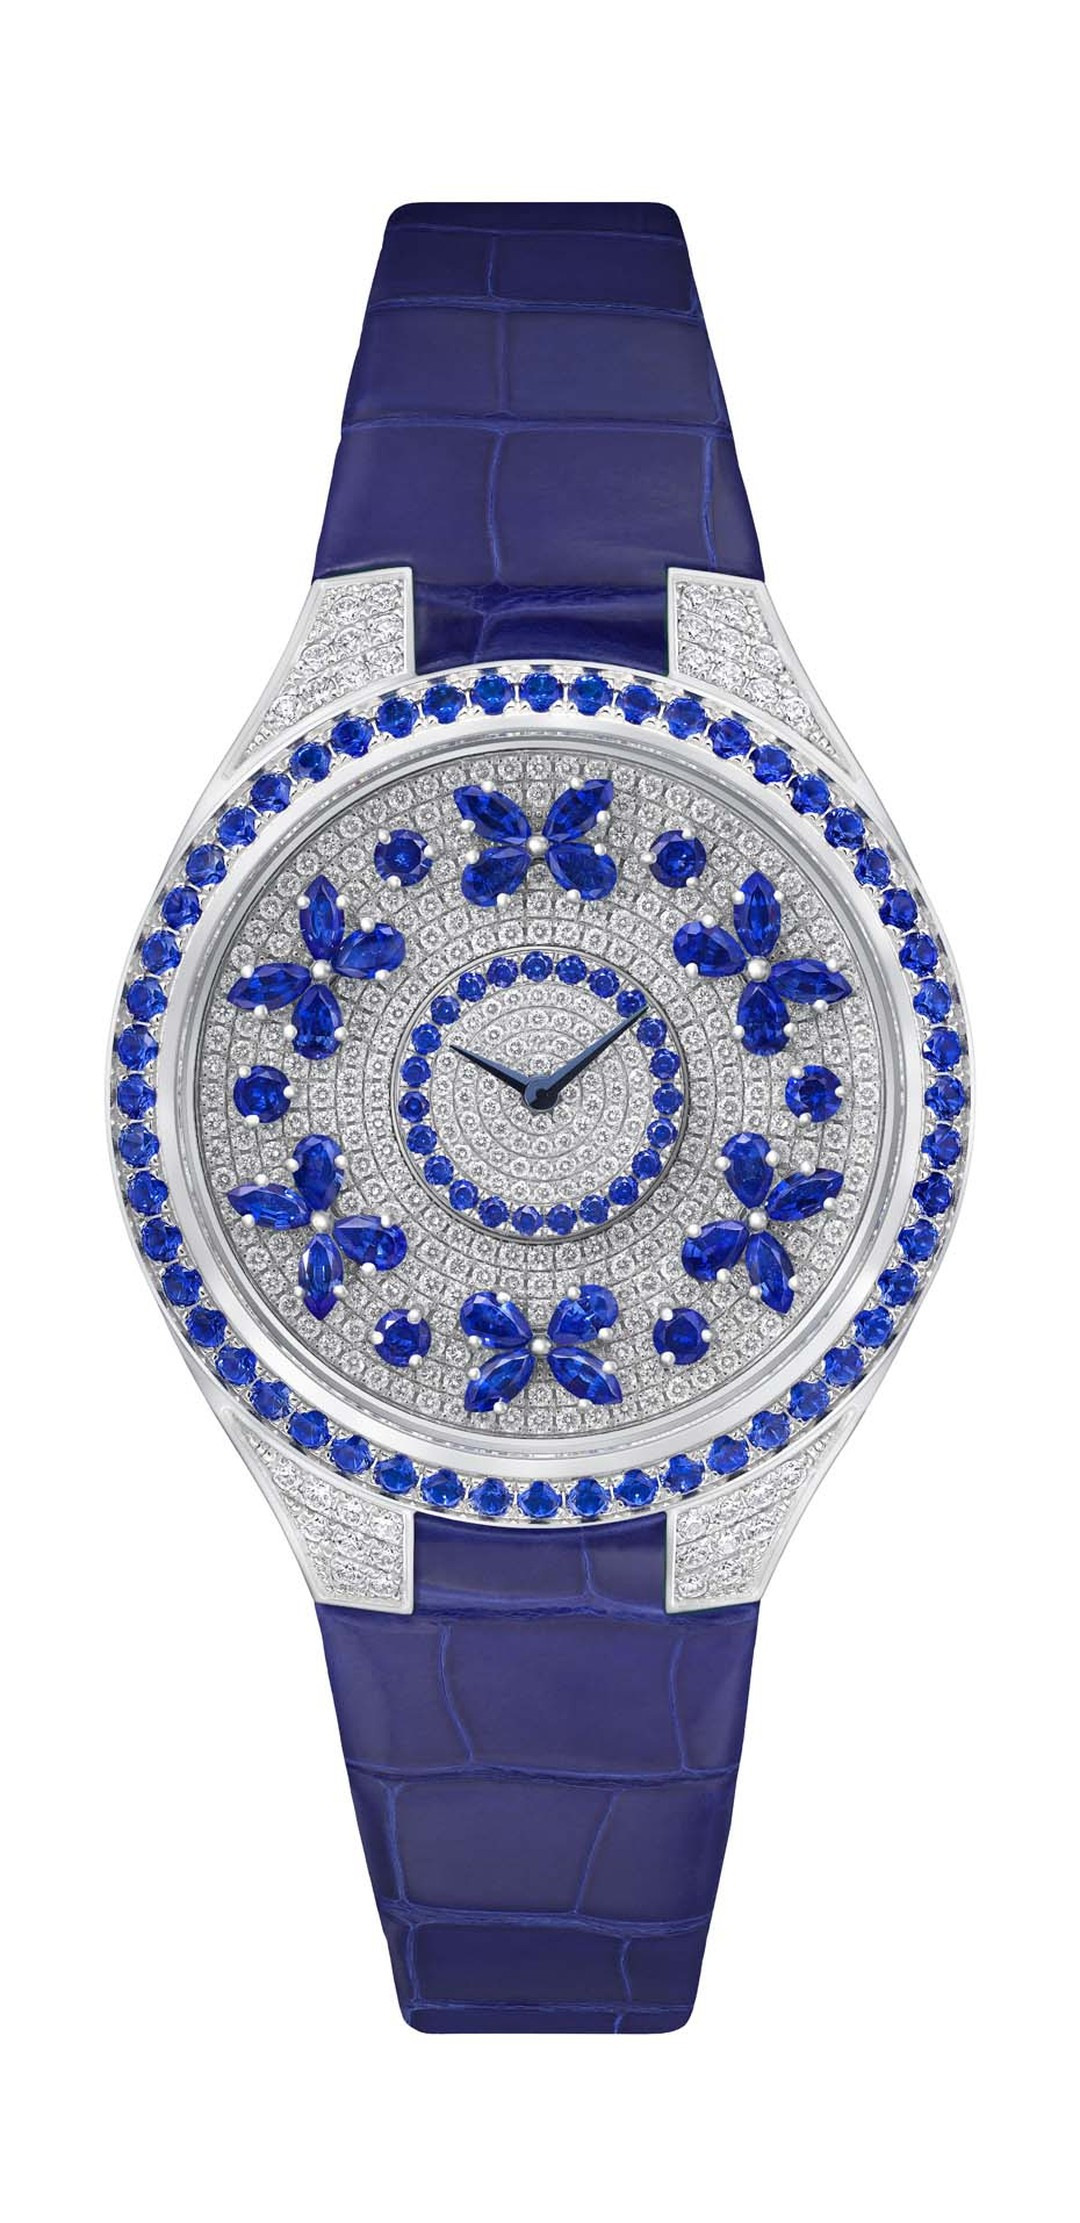 Butterfly and fish watches_Graff_Butterfly disco white and sapphire diamond watch.jpg